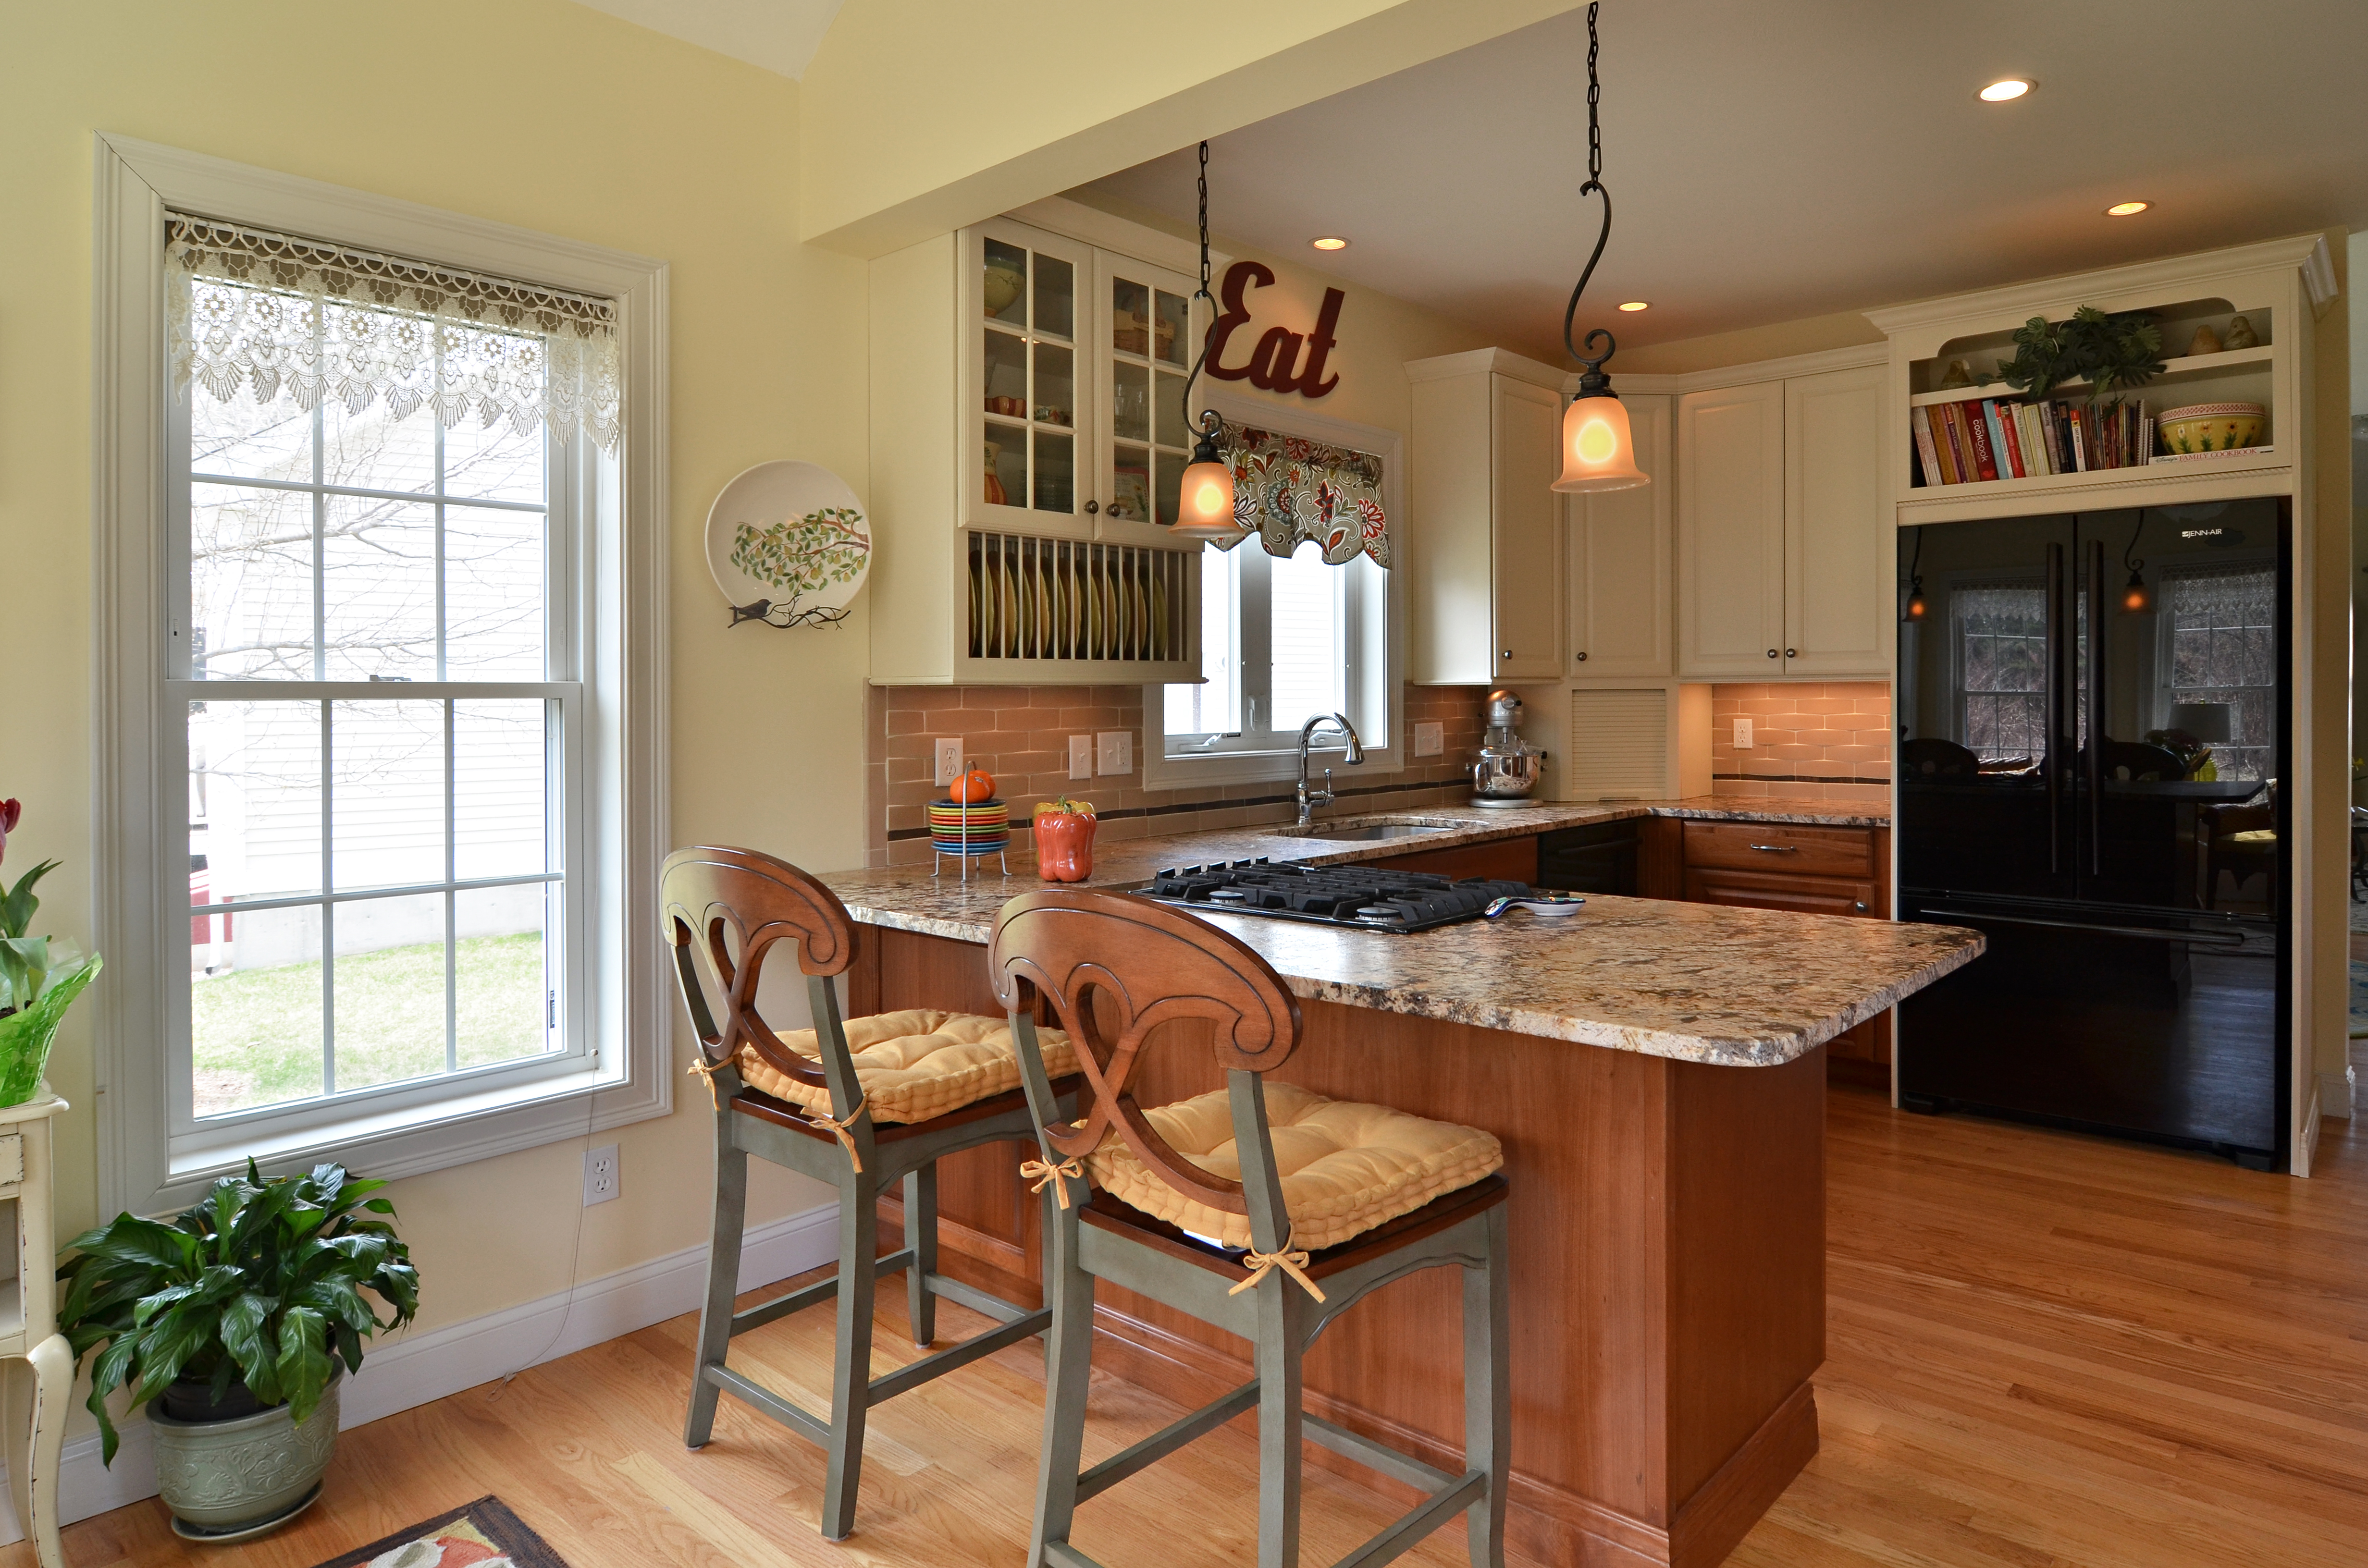 Combine small kitchen and sun room to create a spacious entertaining